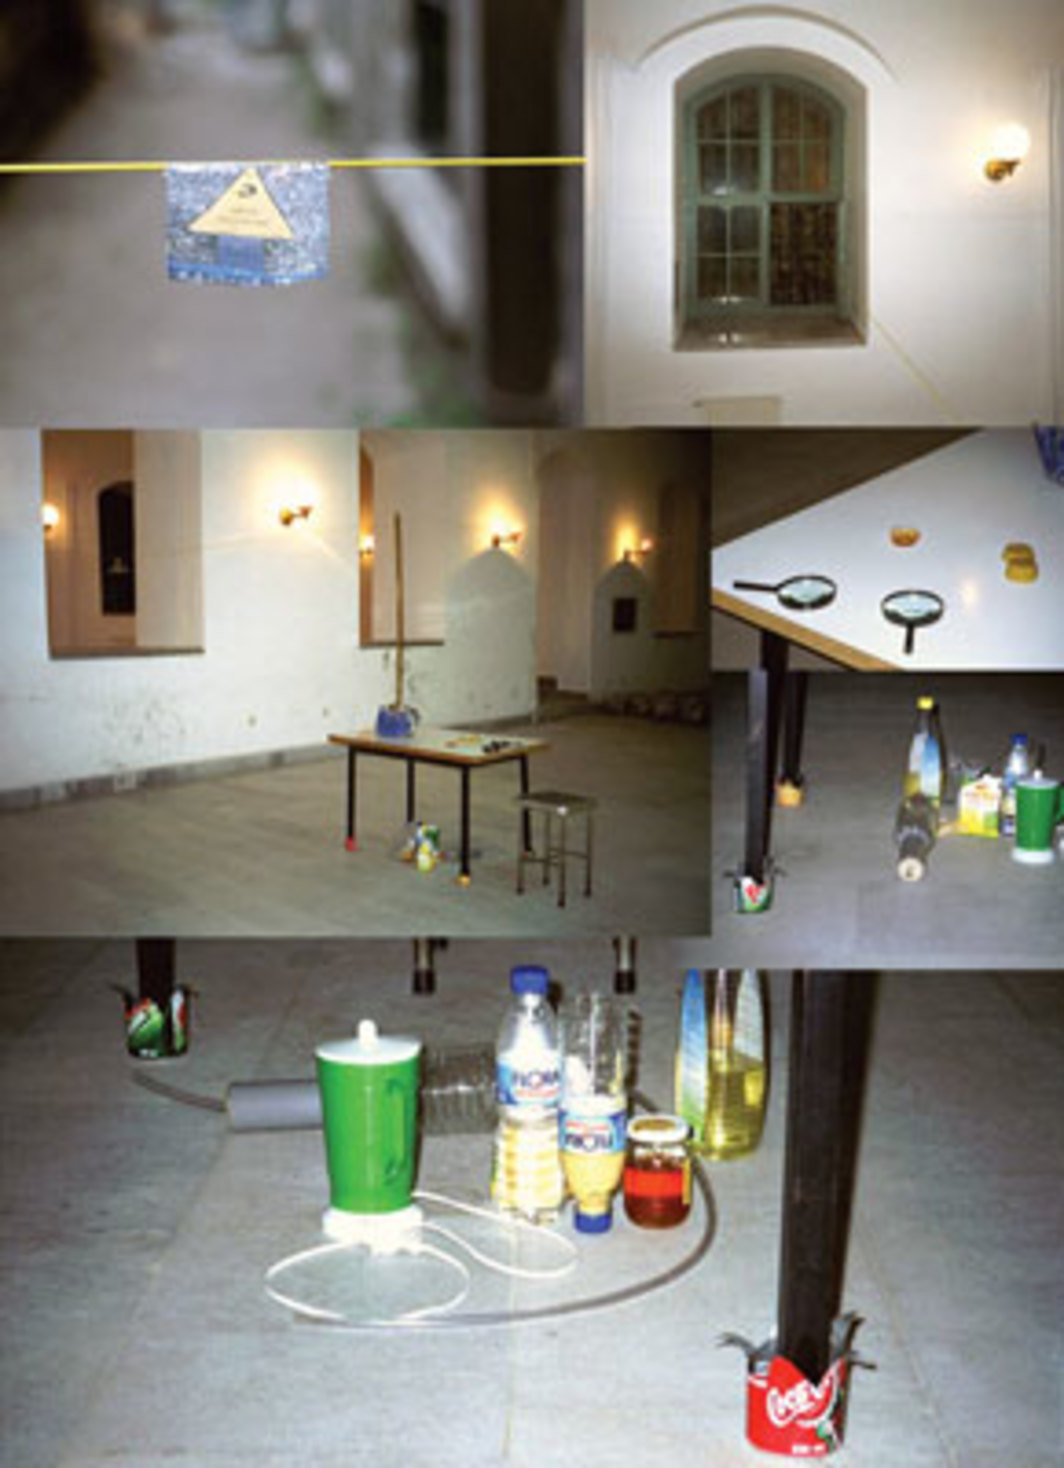 Tue Greenfort, Social Organism, 2001. Installation views, Technical University, Istanbul.